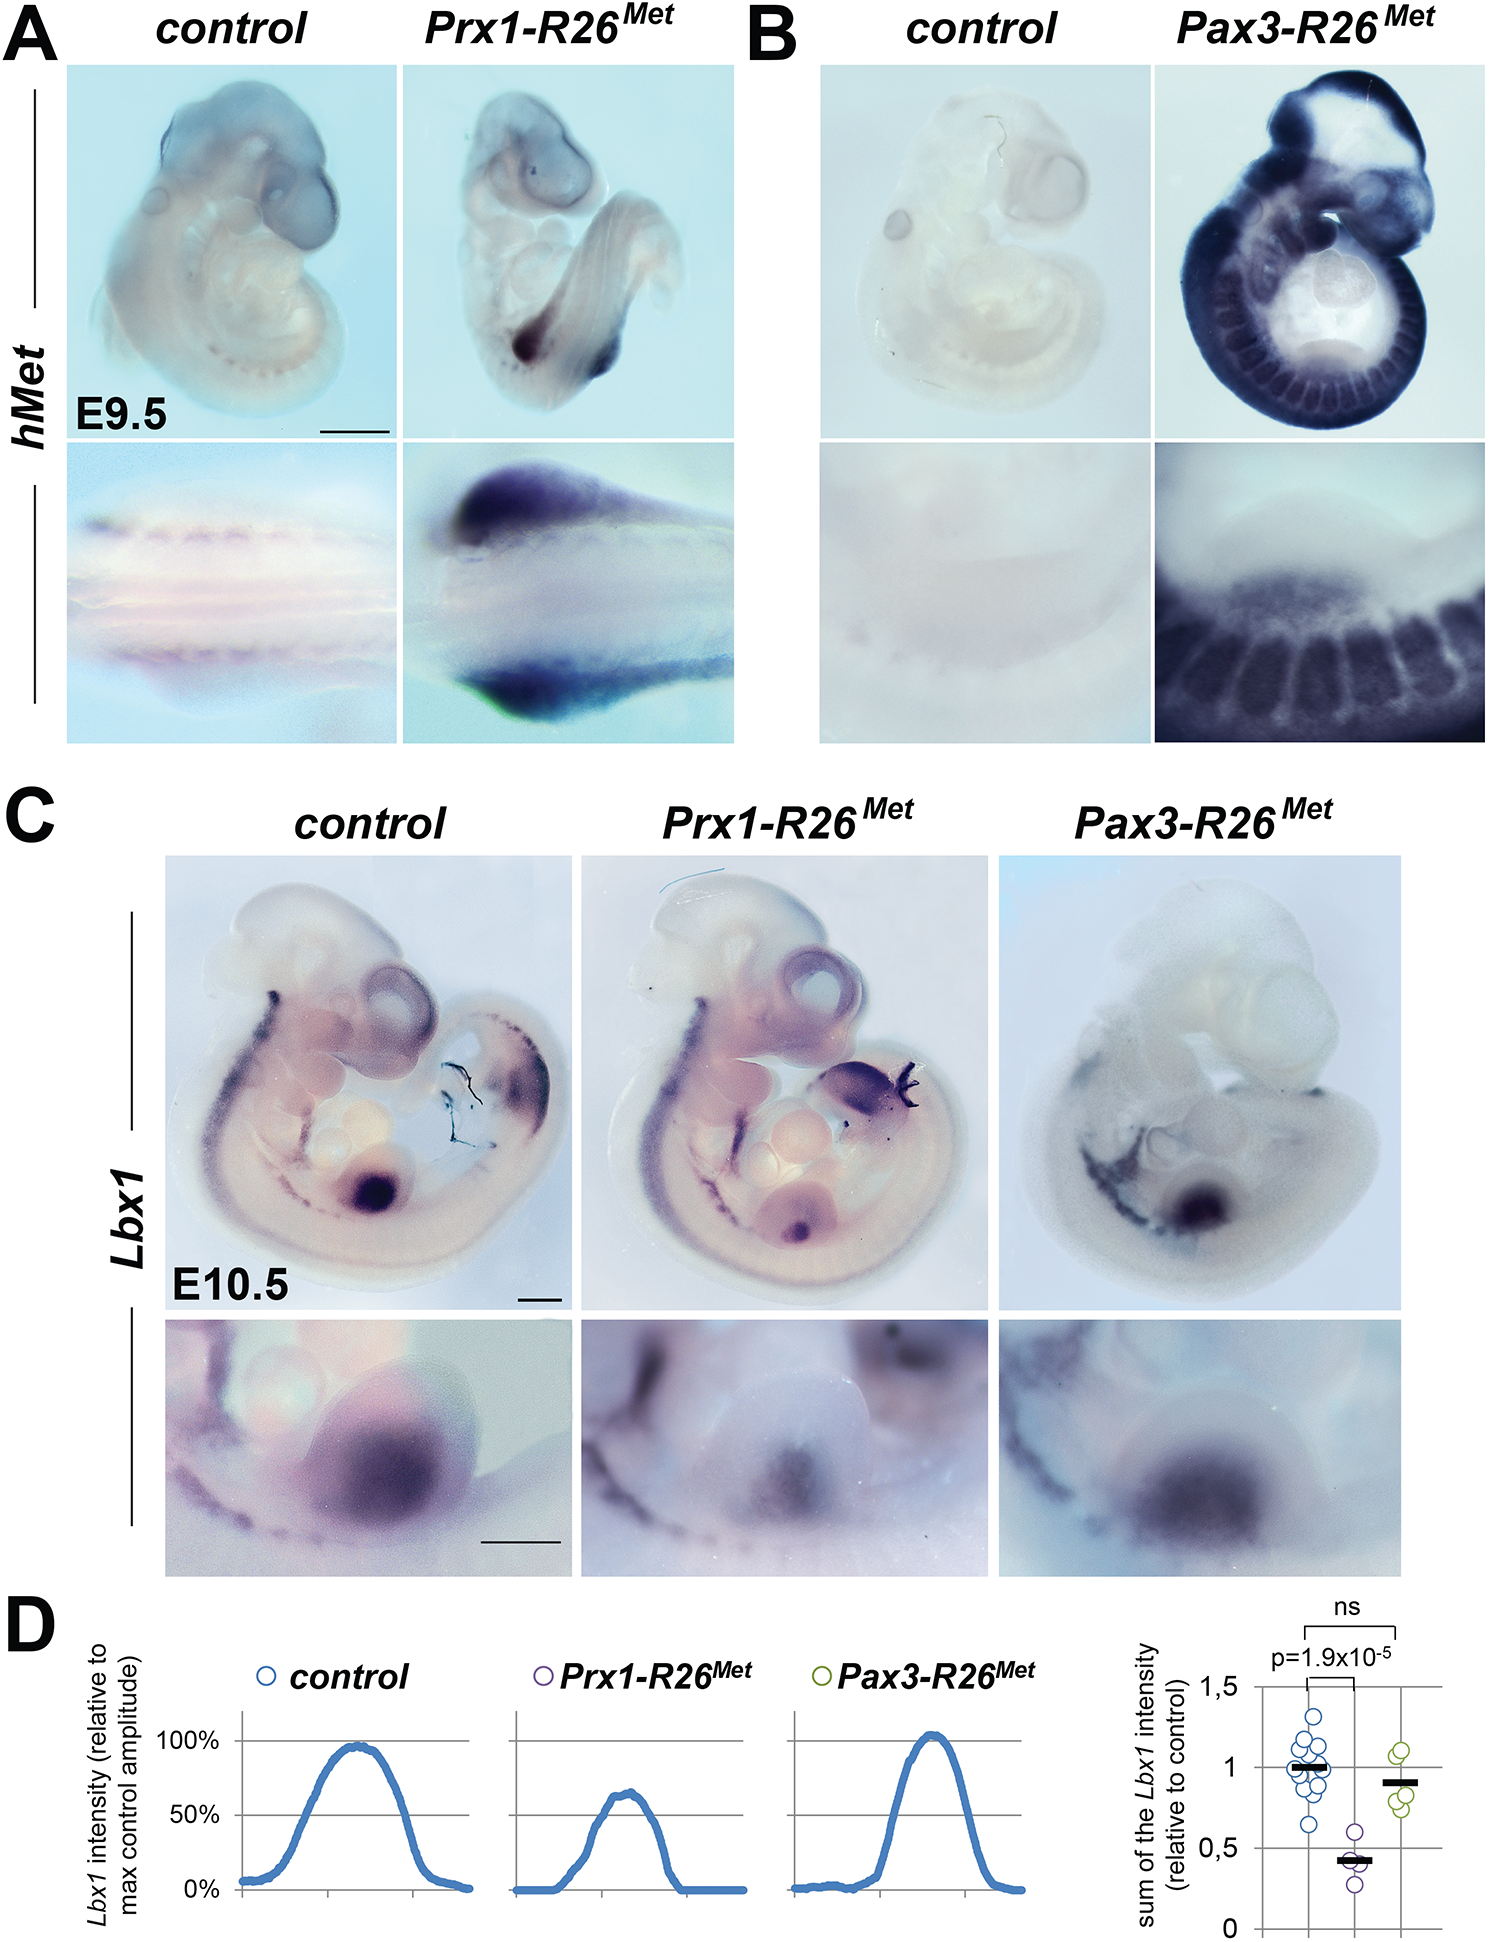 Ectopic Met in limb mesenchyme drastically reduces limb colonization by migrating myoblasts.